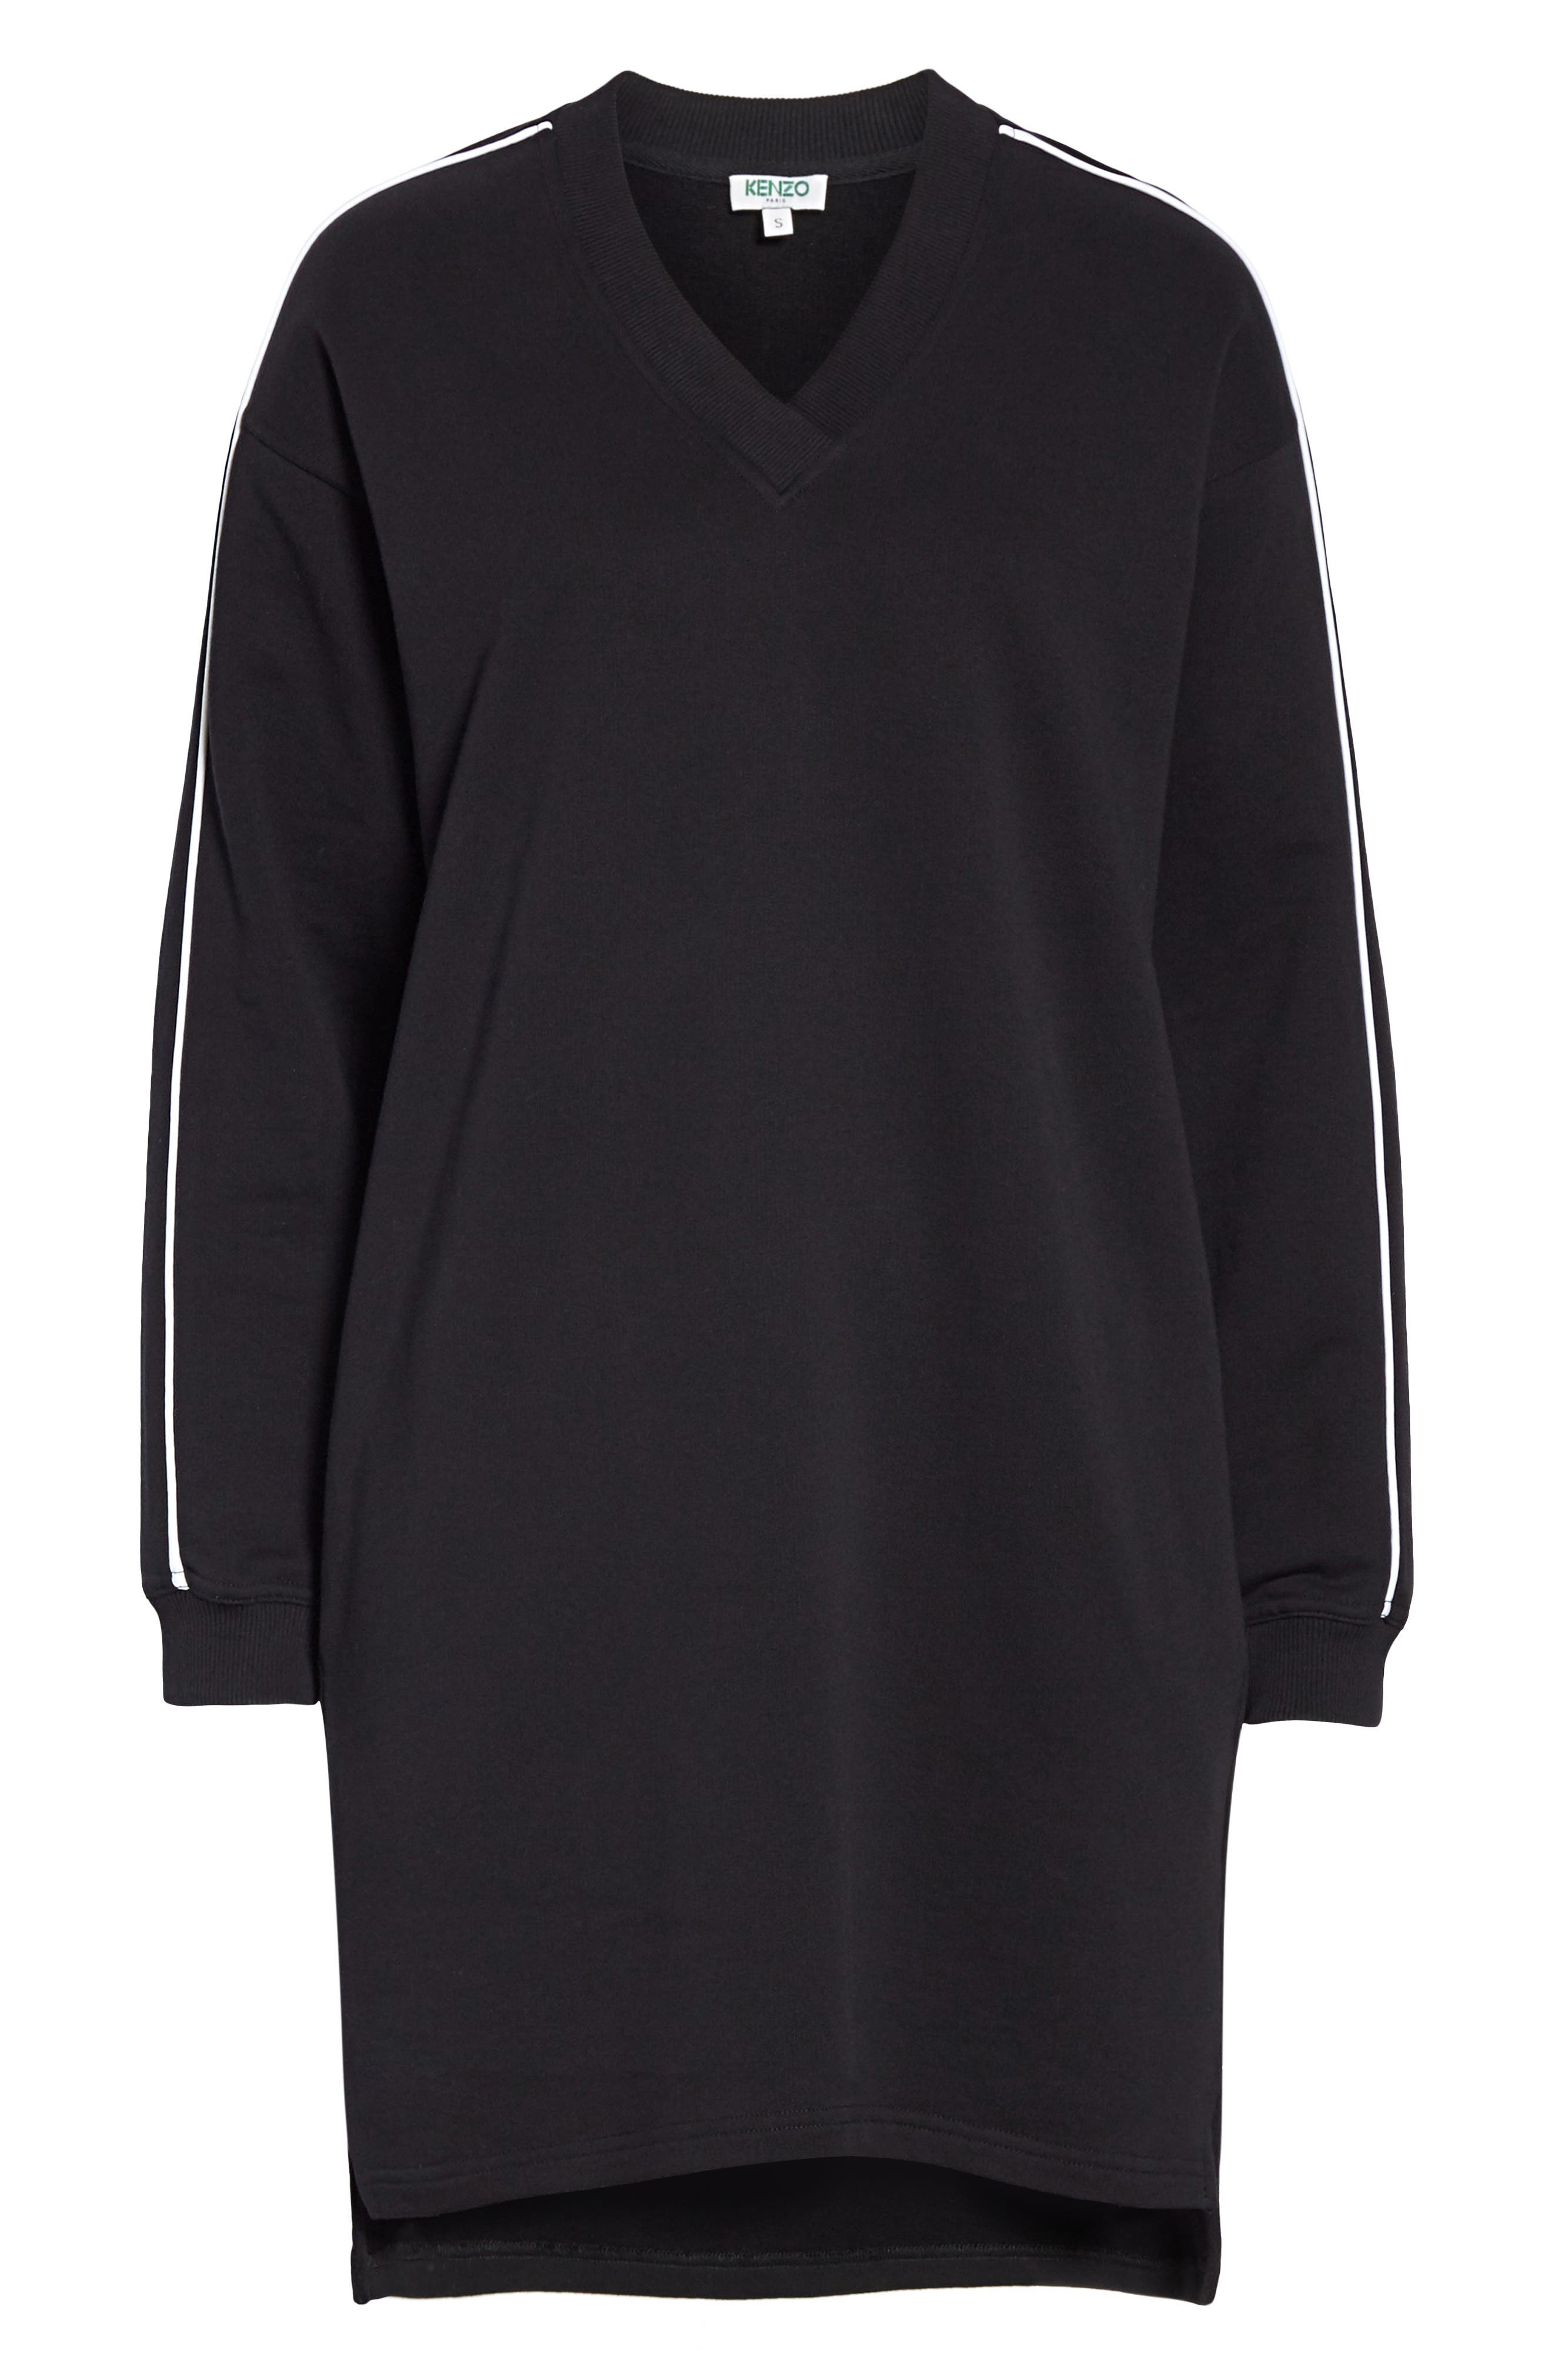 KENZO,                             Sport Sweatshirt Dress,                             Alternate thumbnail 7, color,                             BLACK